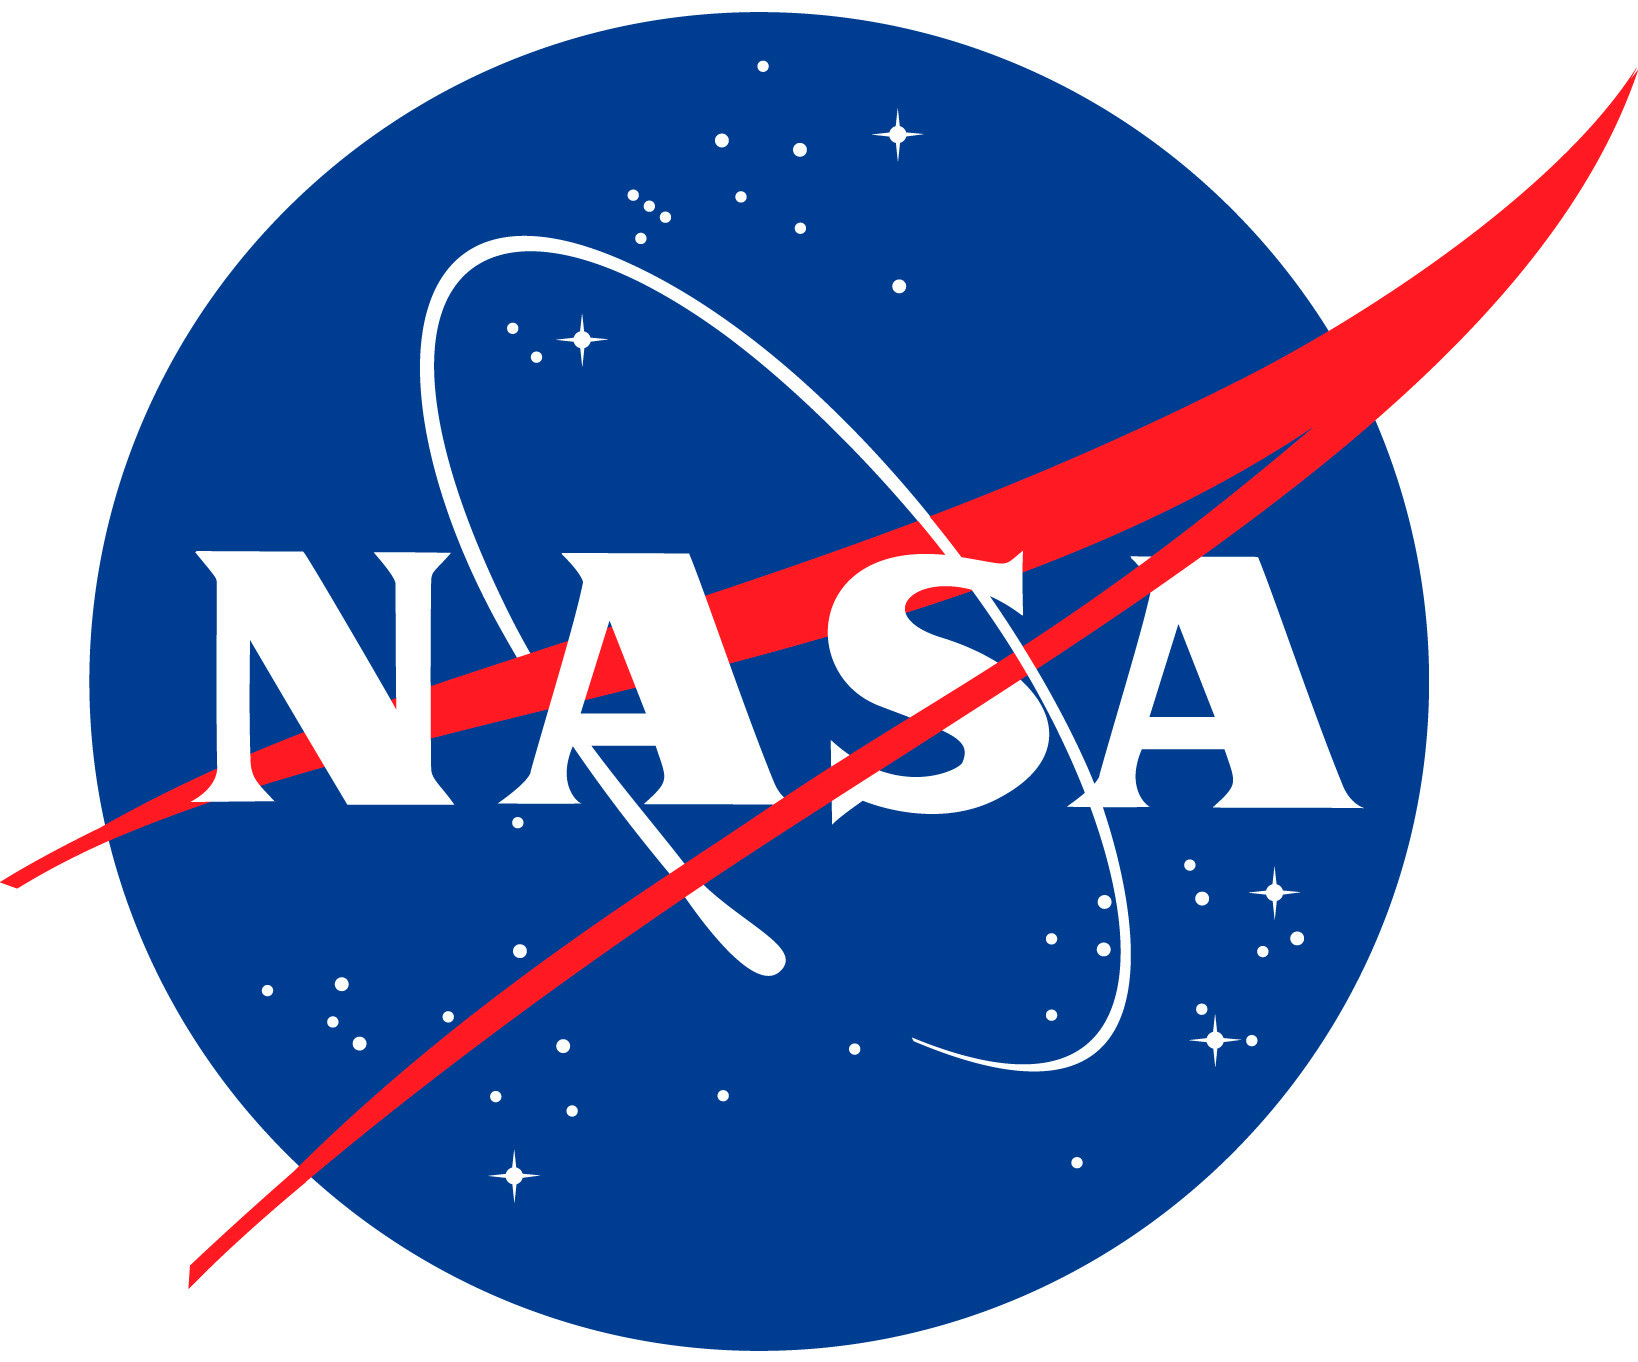 https://i2.wp.com/pmm.nasa.gov/sites/default/files/NASA-Logo-Large.jpg